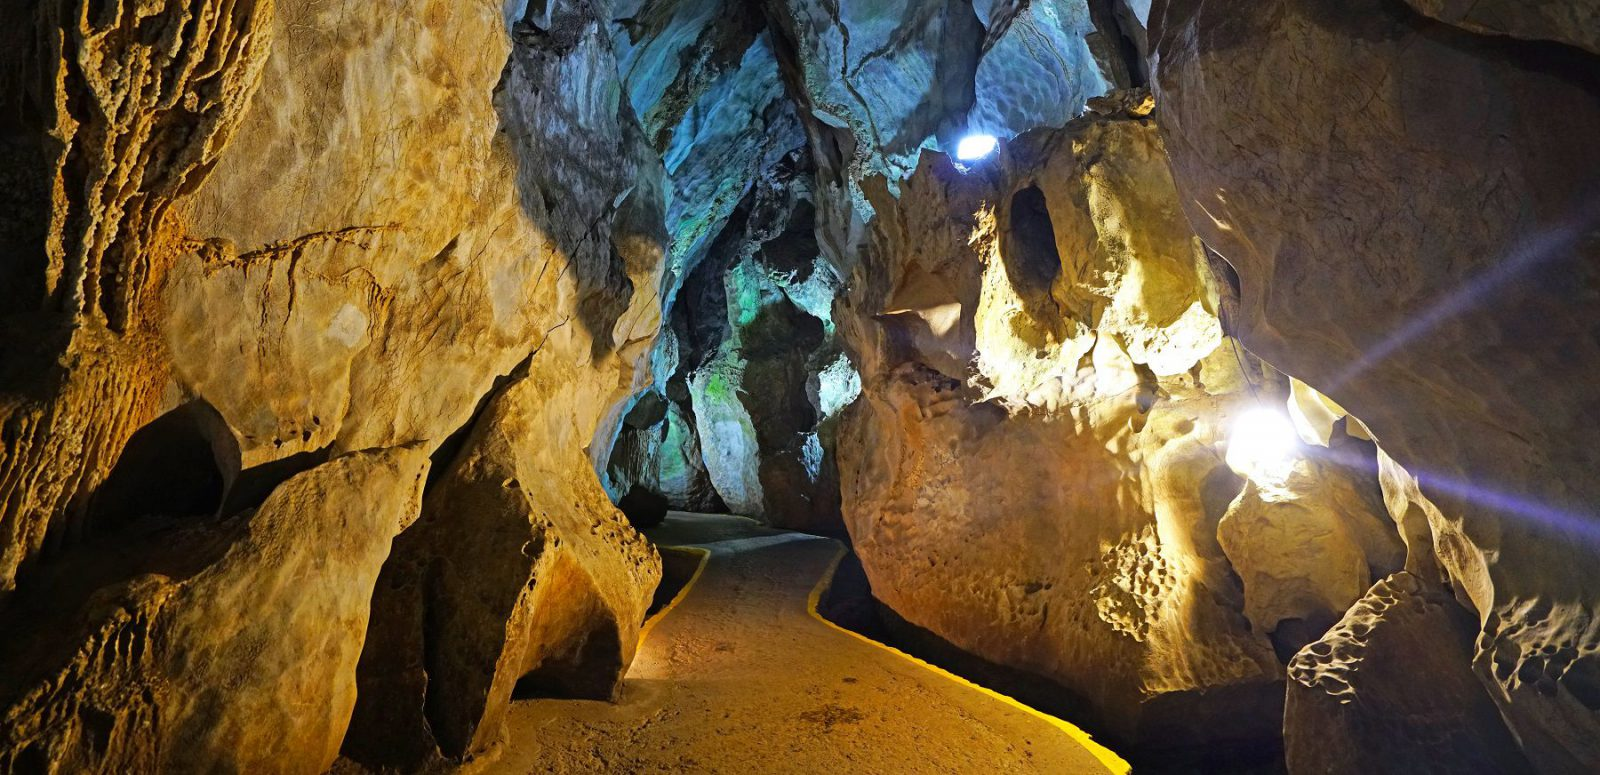 Cave of the Indian in Vinales